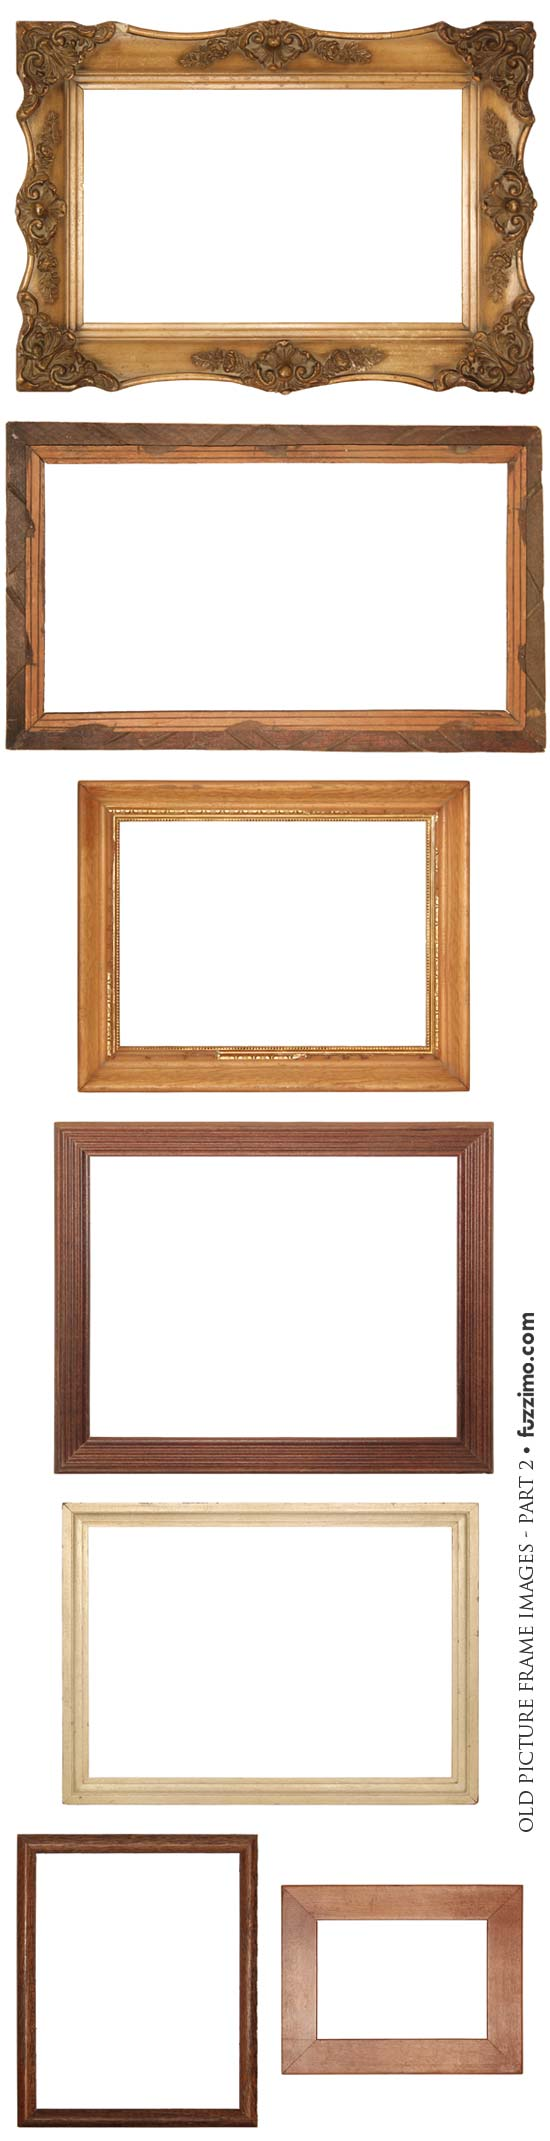 Free Hi-Res Old Picture Frame Images part 2 | fuzzimo